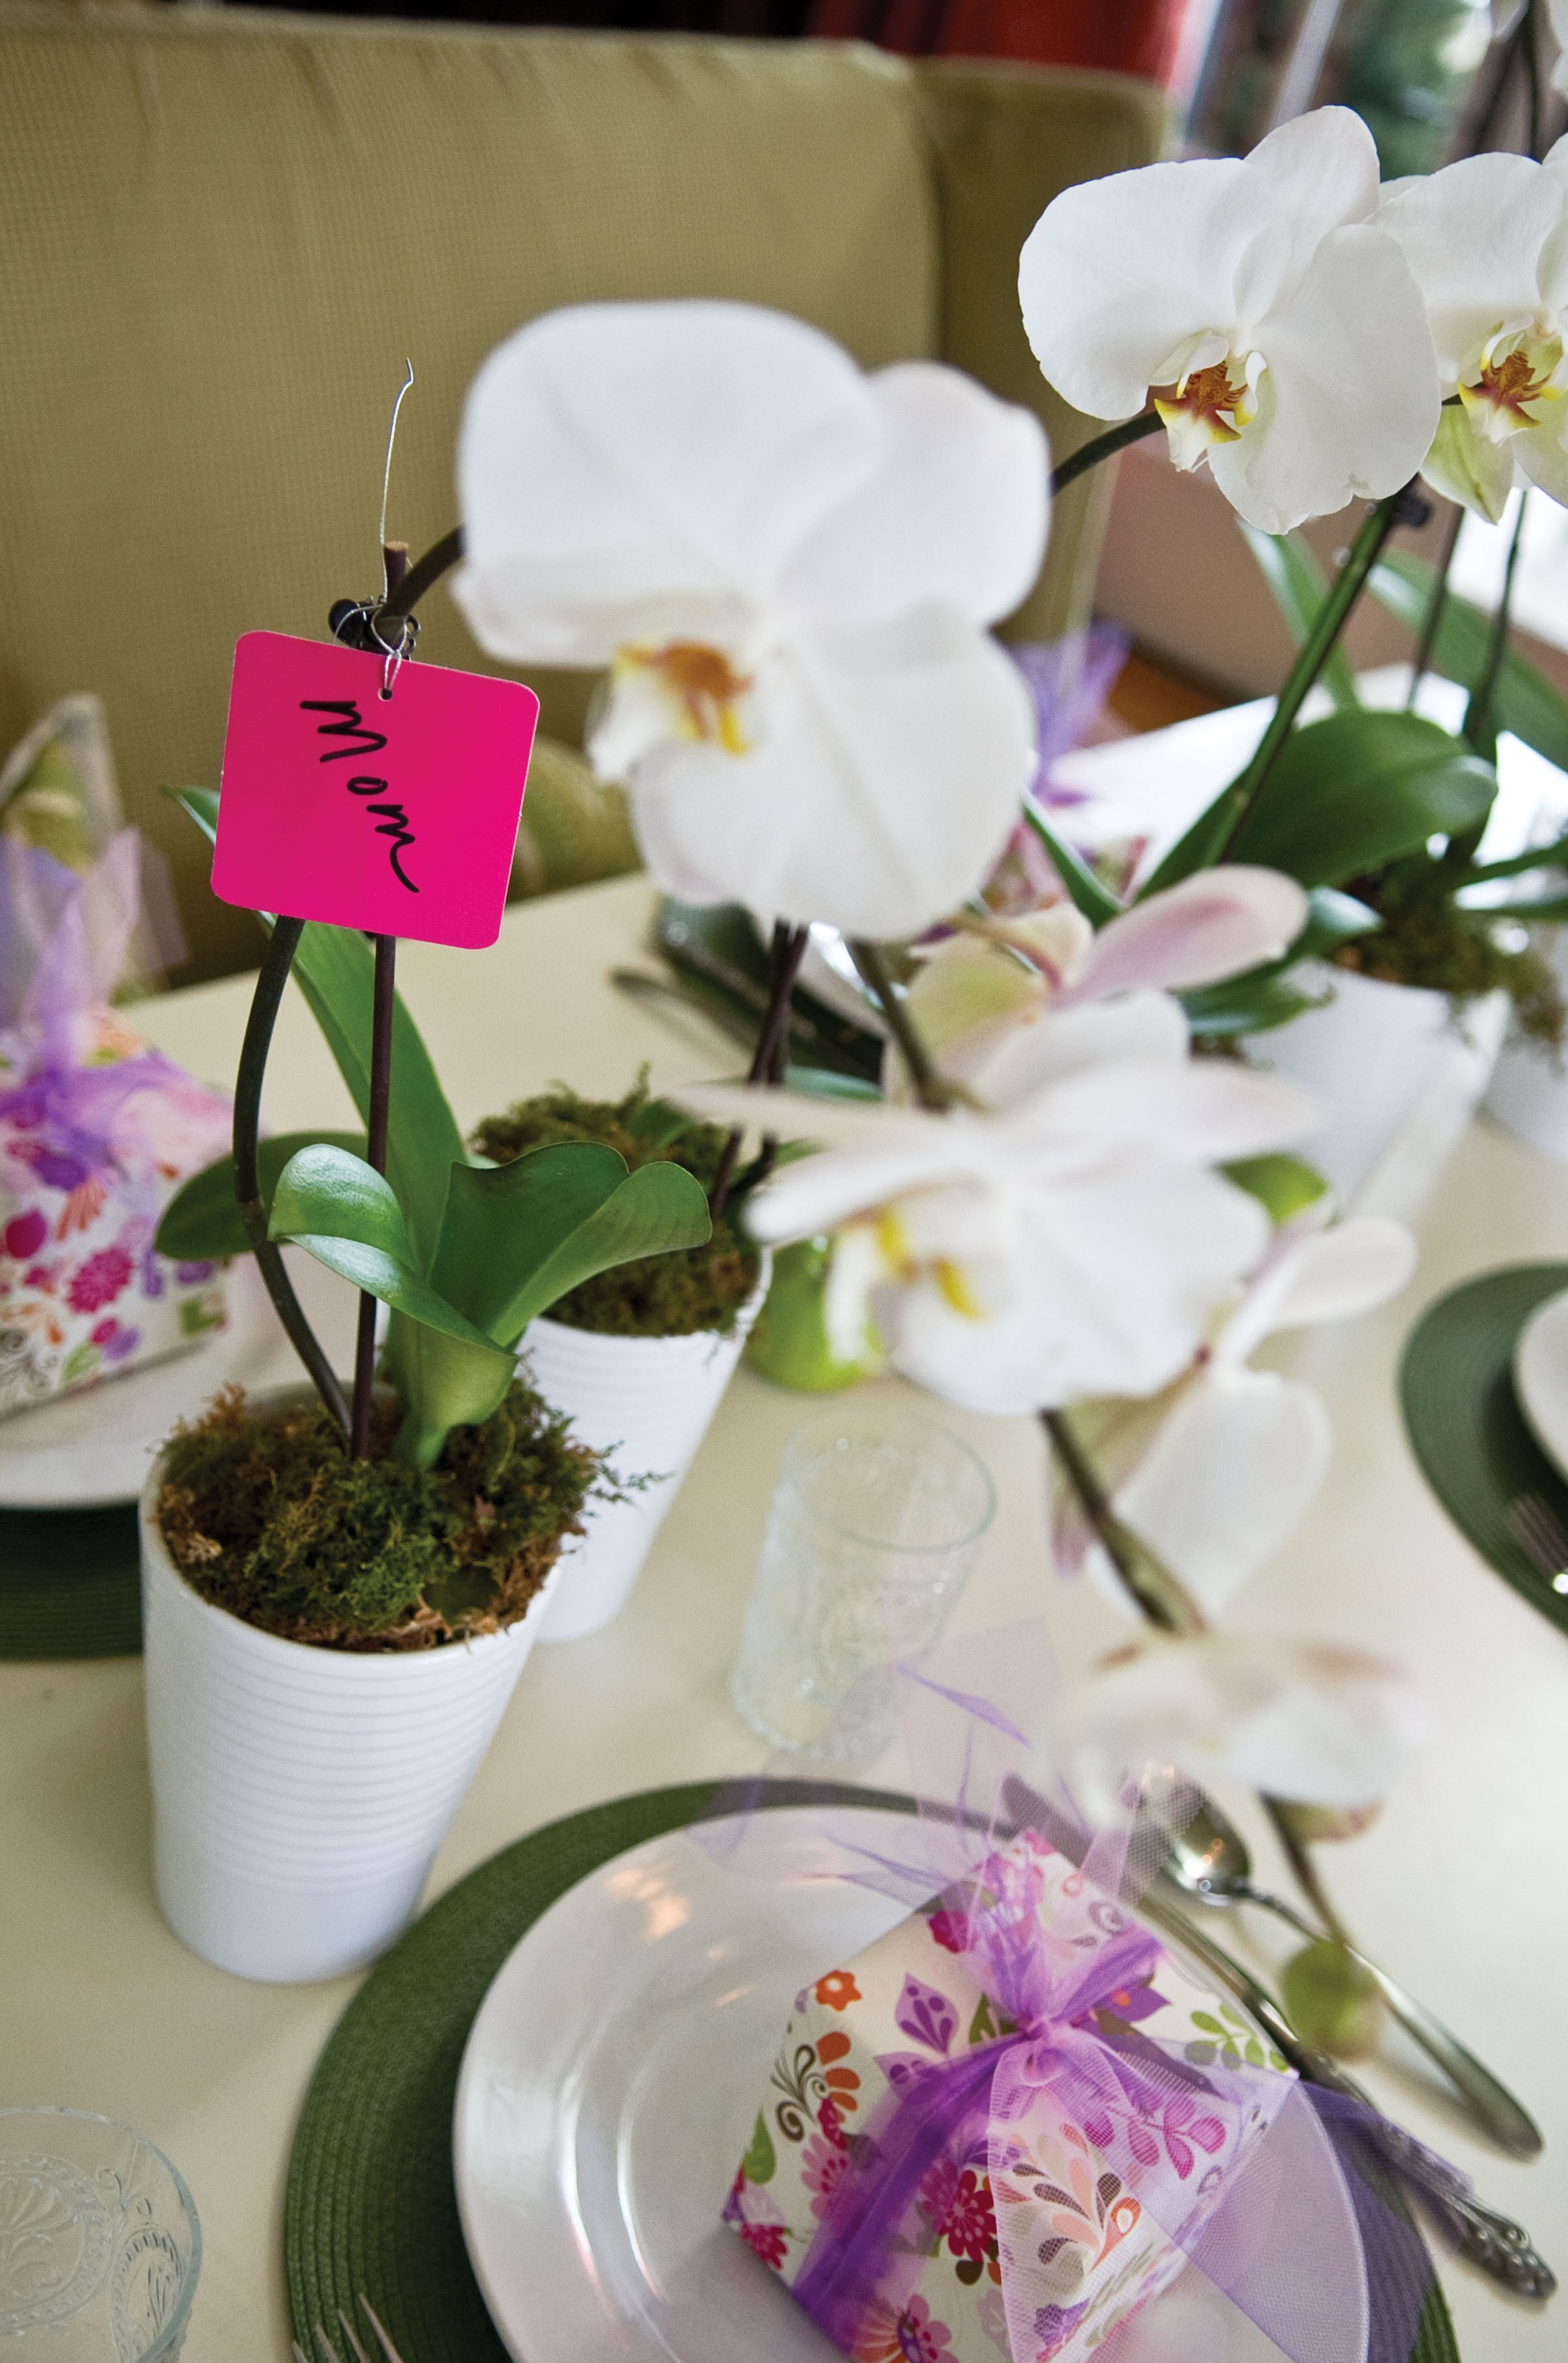 5 inch orchid mother's day gift